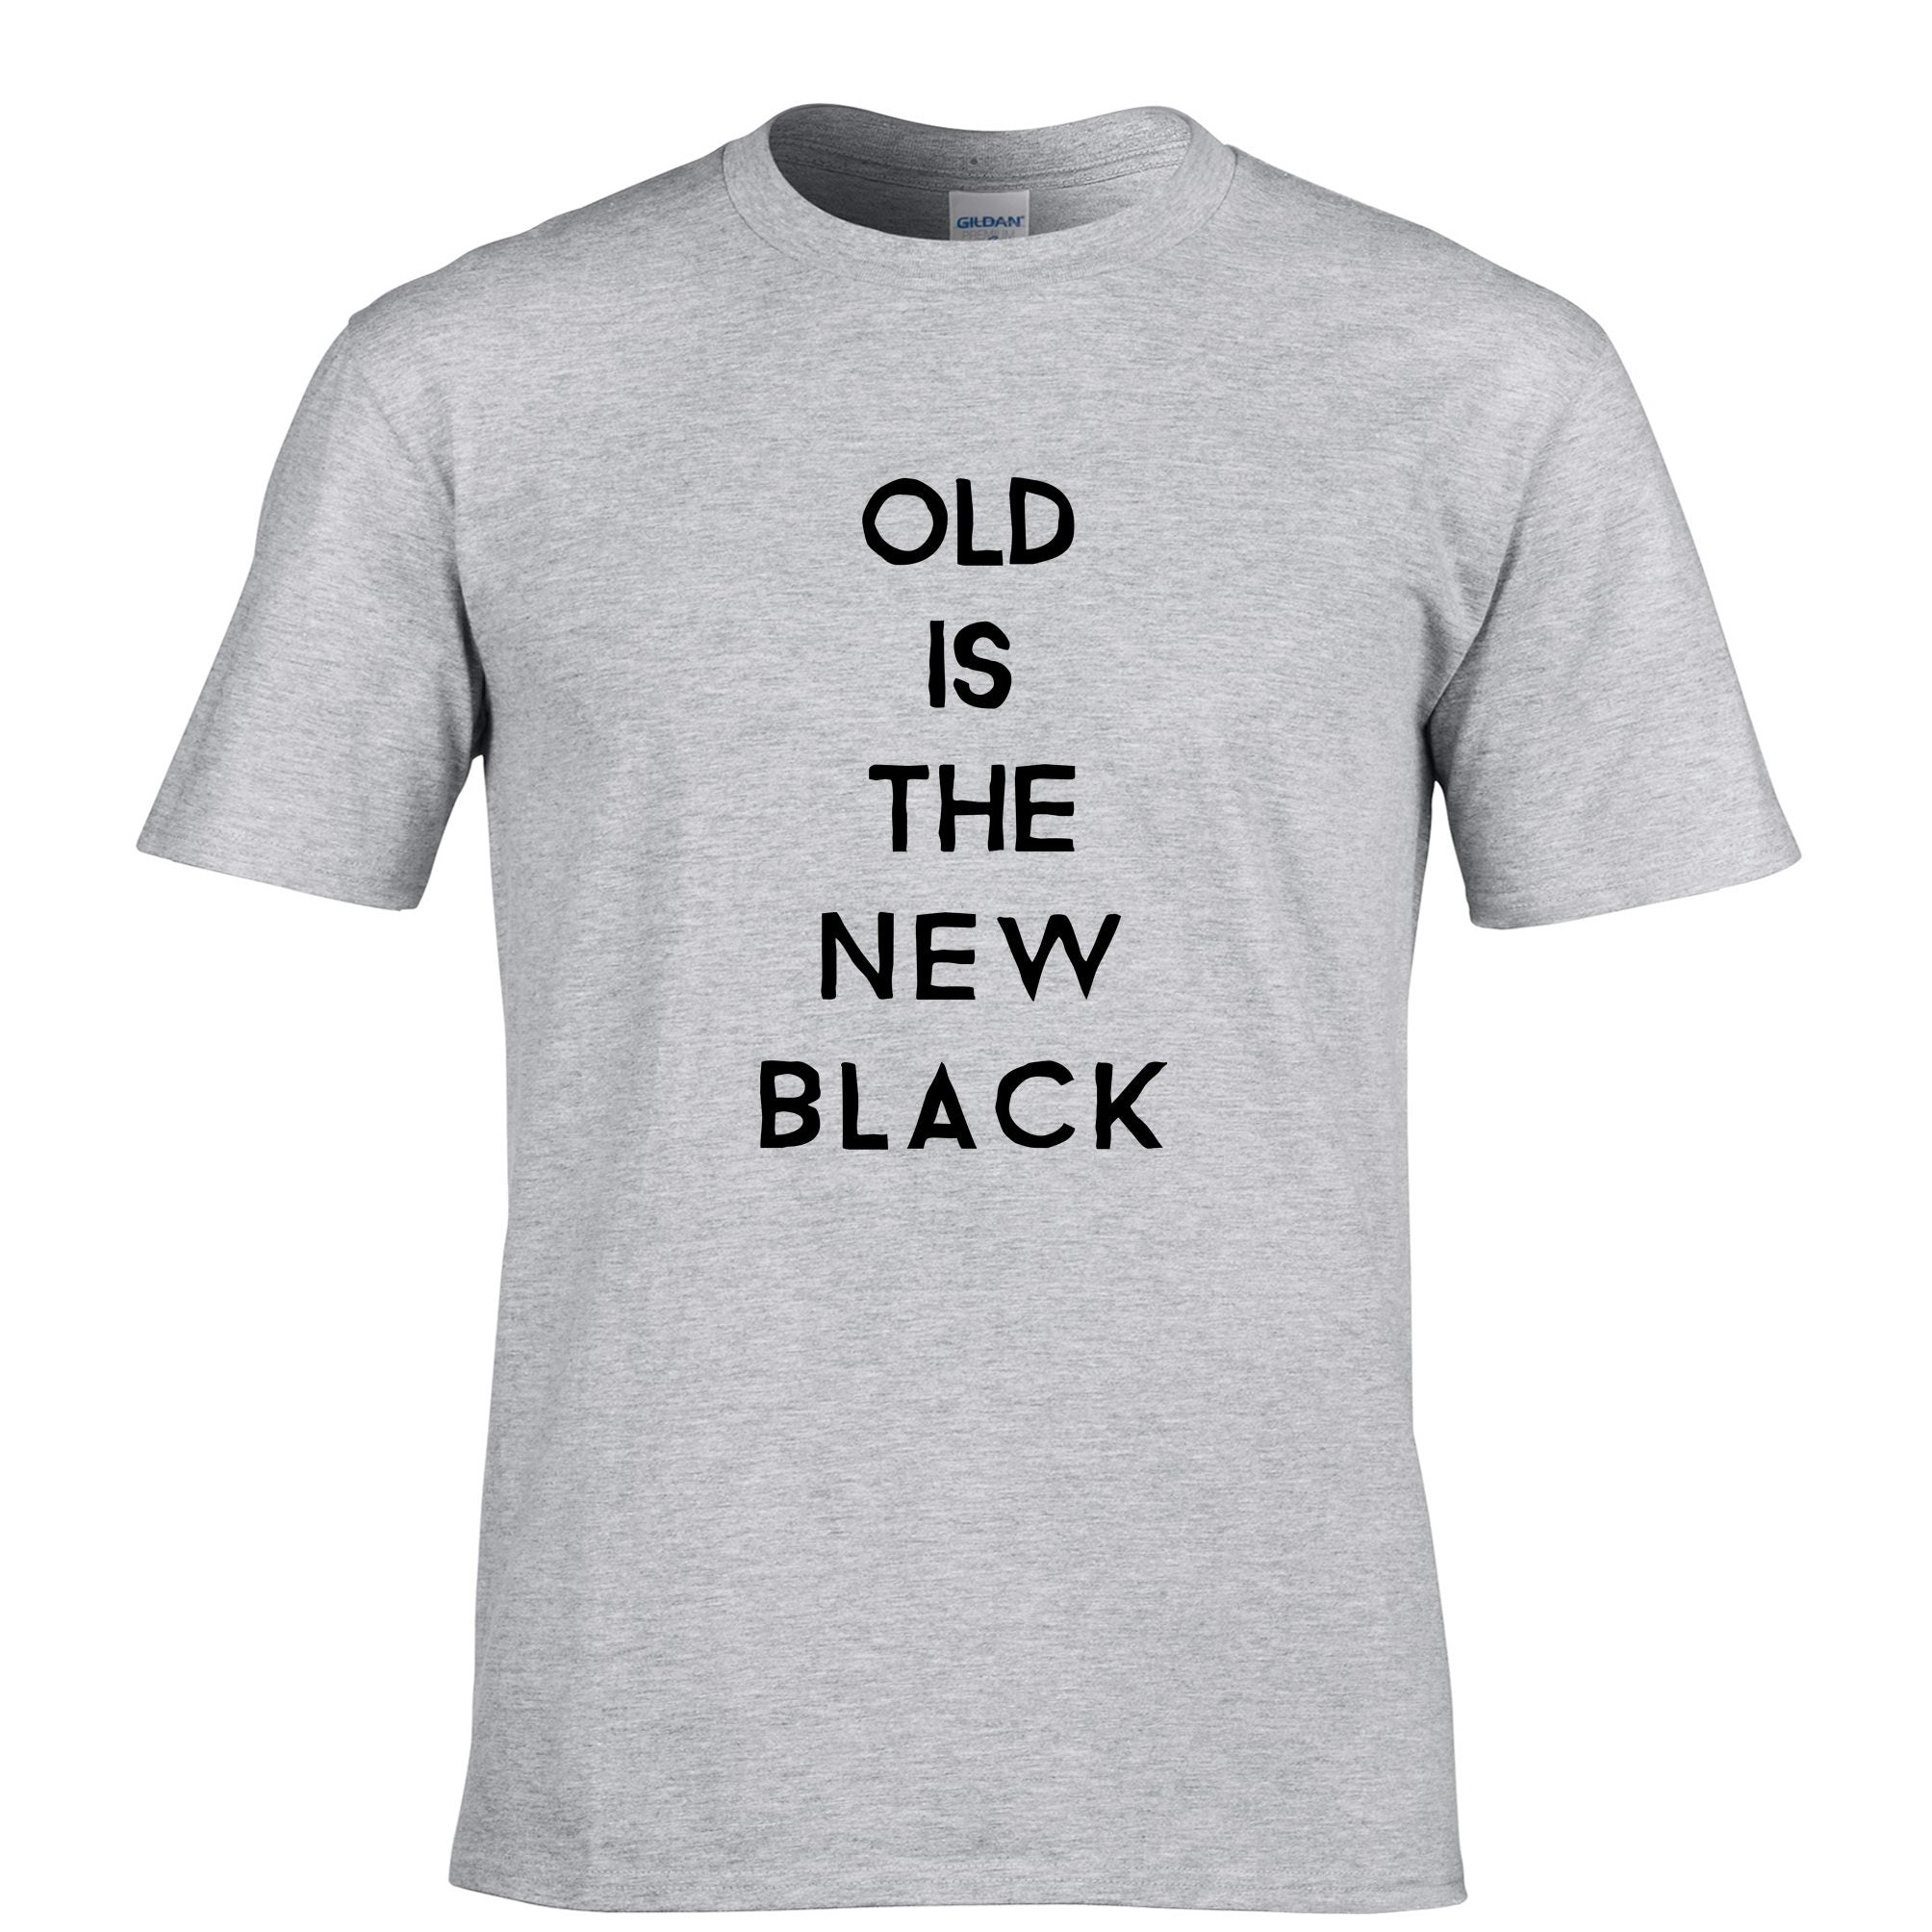 Mens Birthday T Shirt Old Is The New Black Slogan Tee